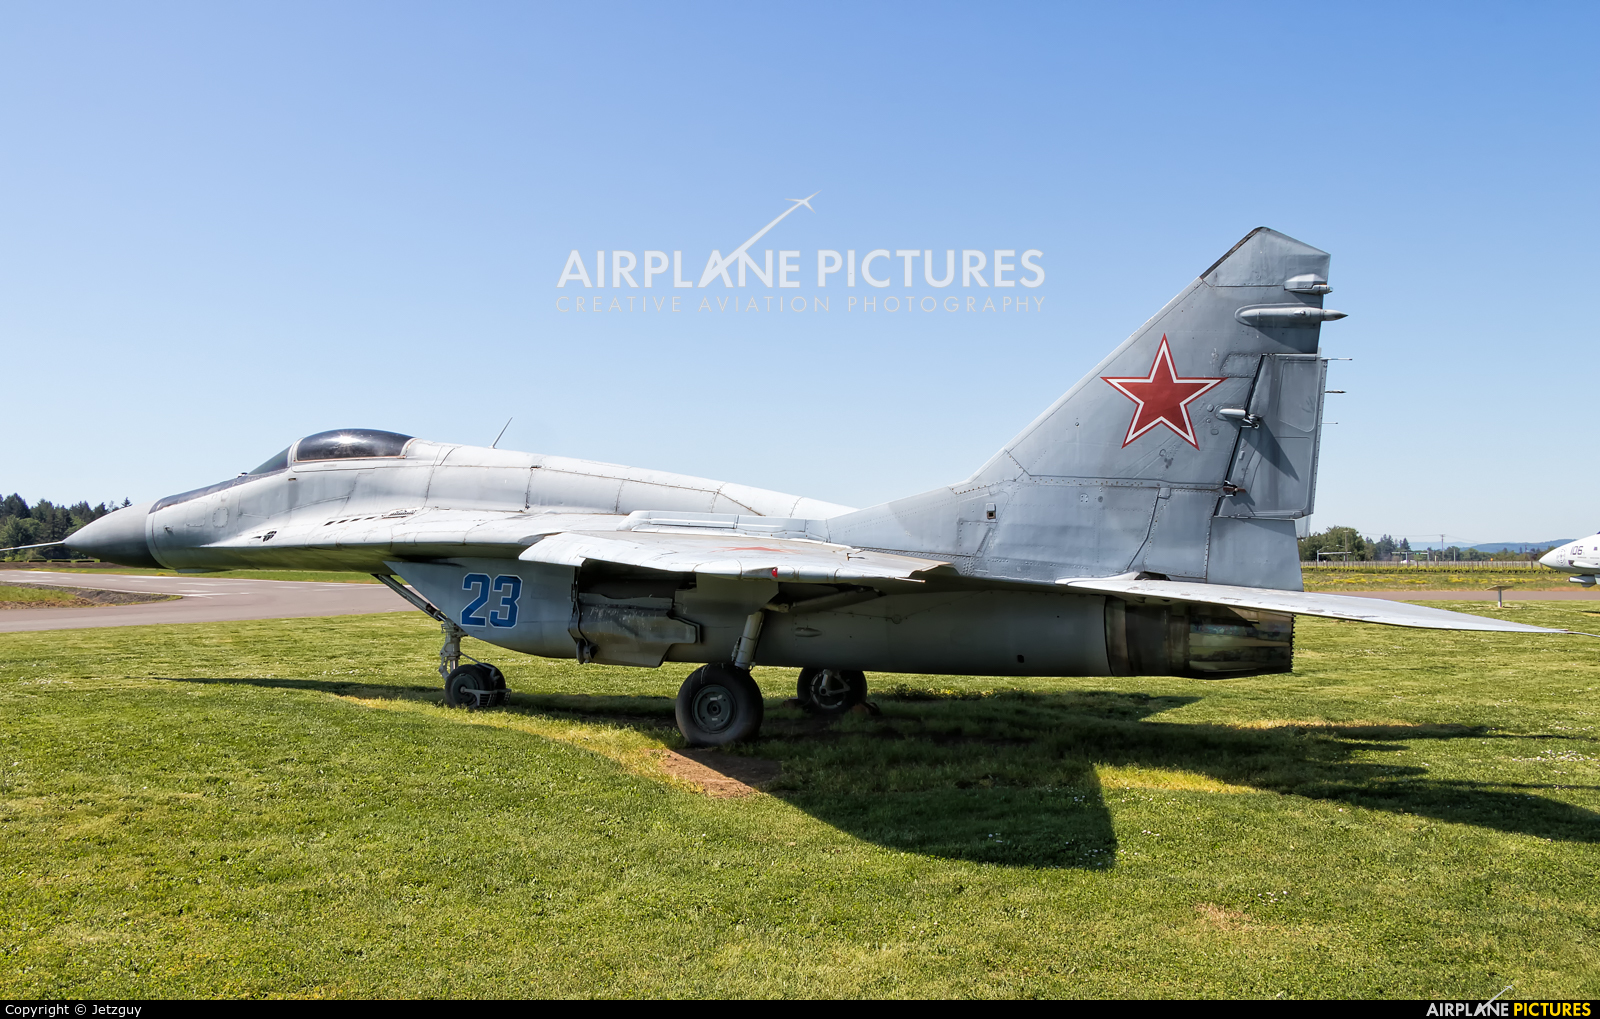 Russia - Air Force 23 aircraft at McMinnville - Evergreen Aviation & Space Museum